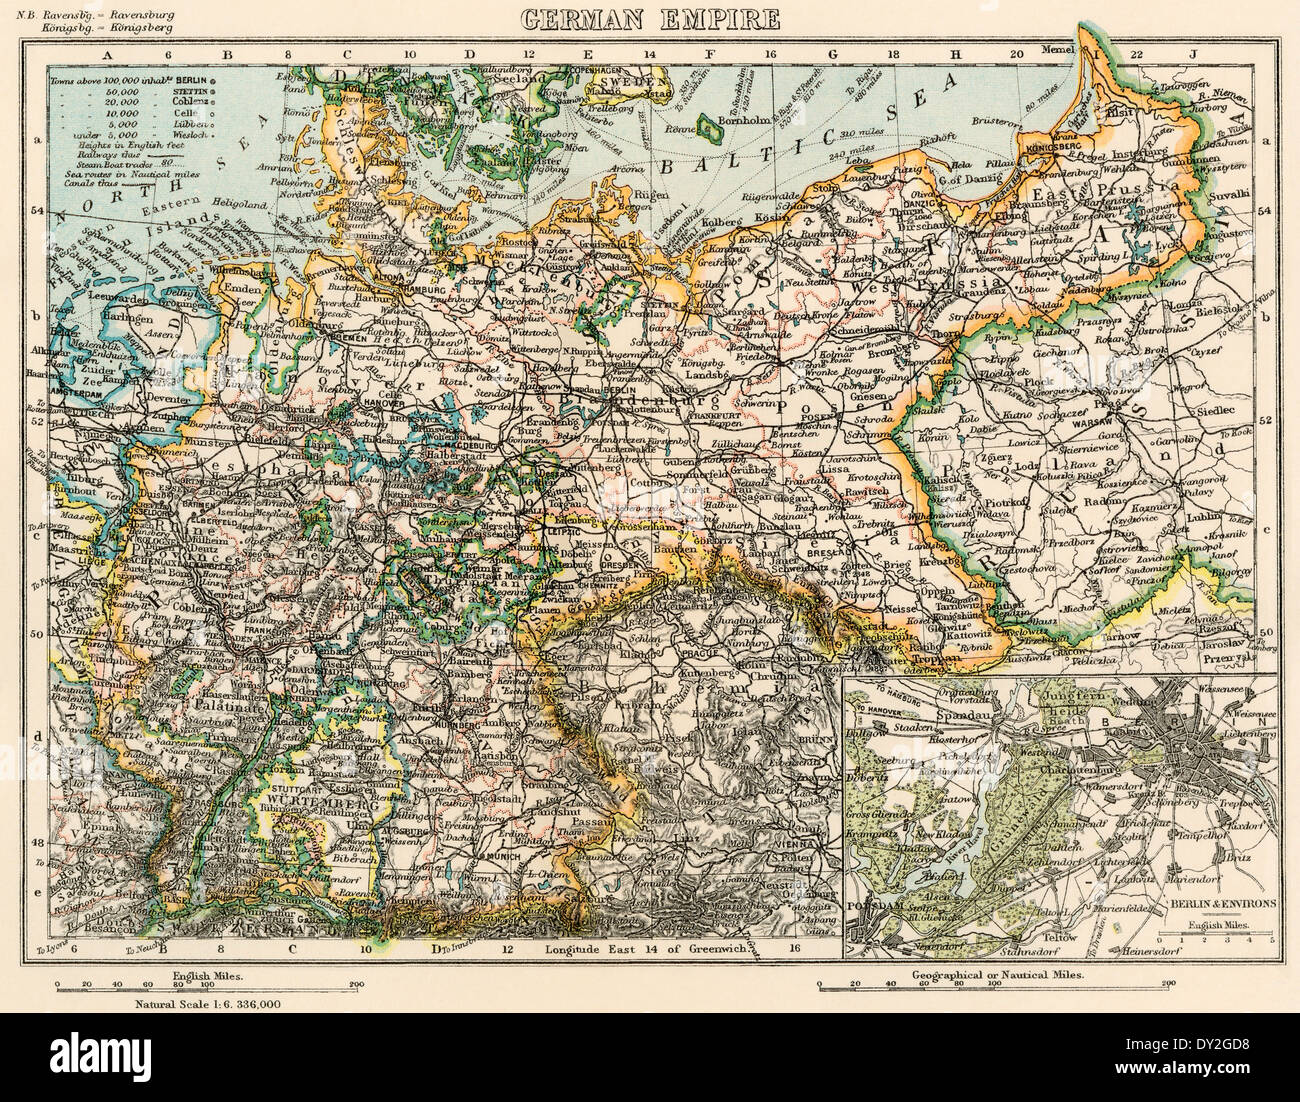 Map Of Germany Late 1800s.Map Of The German Empire Late 1800s Printed Color Lithograph Stock